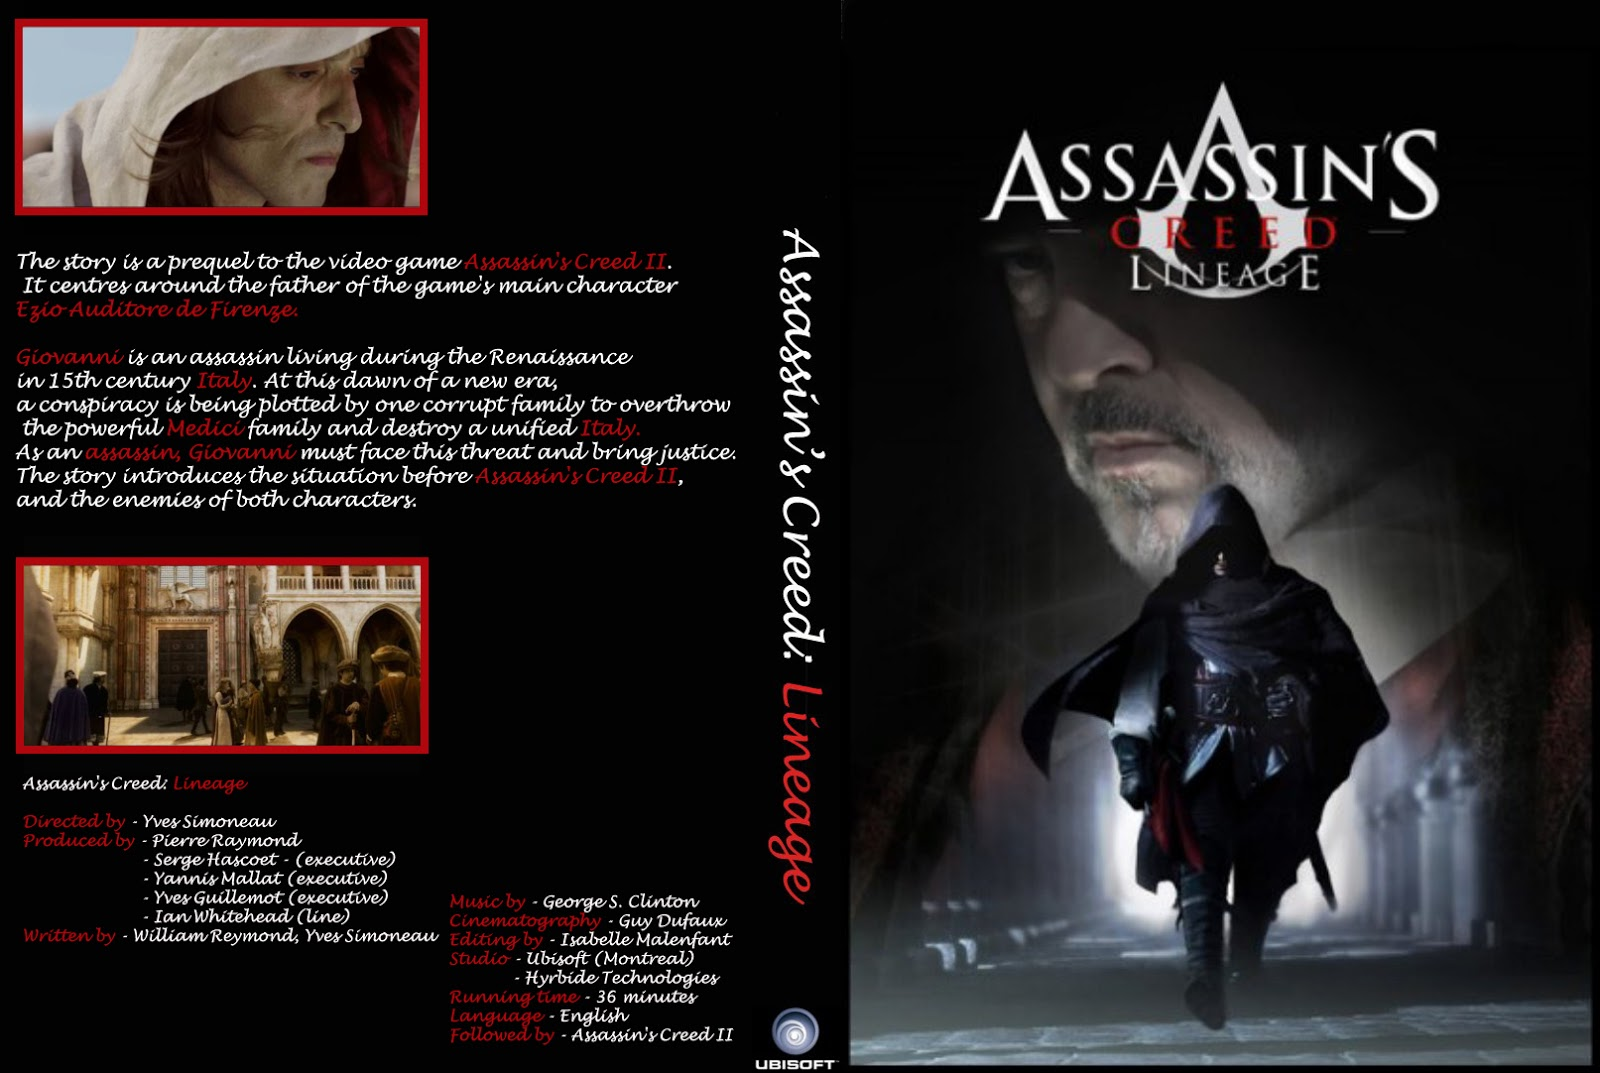 Downloadmovxy Assassins Creed Lineage Season 1 Brrip 720p